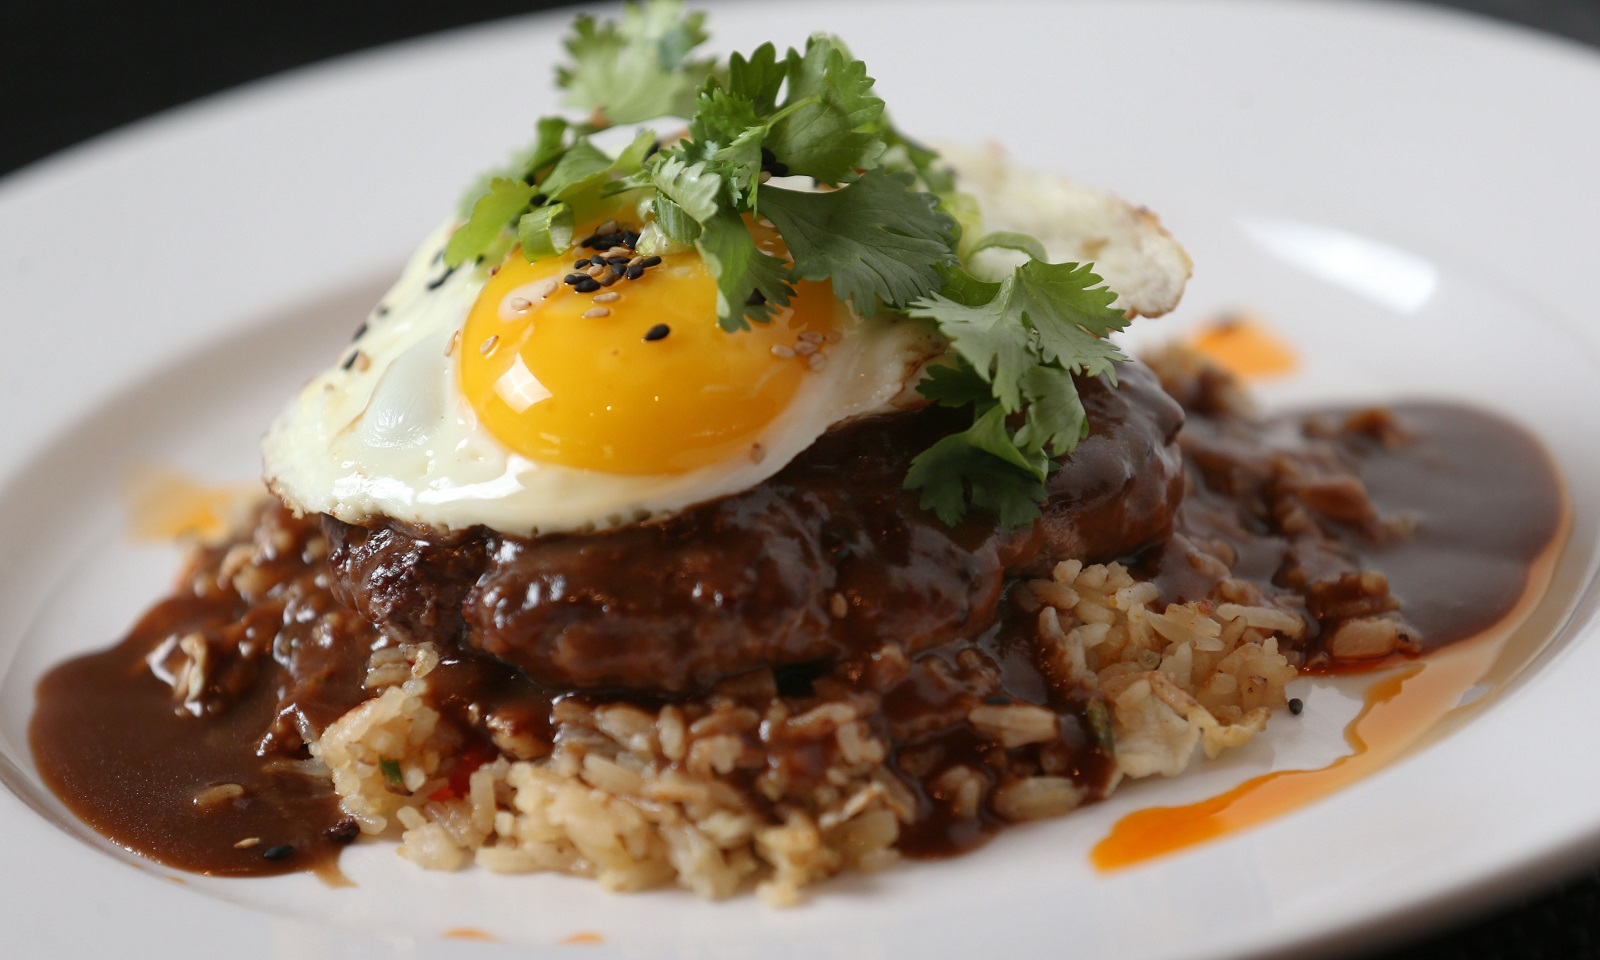 Seabar's Loco moco may not have a bun, but it's still quite hardy. (Sharon Cantillon/Buffalo News)